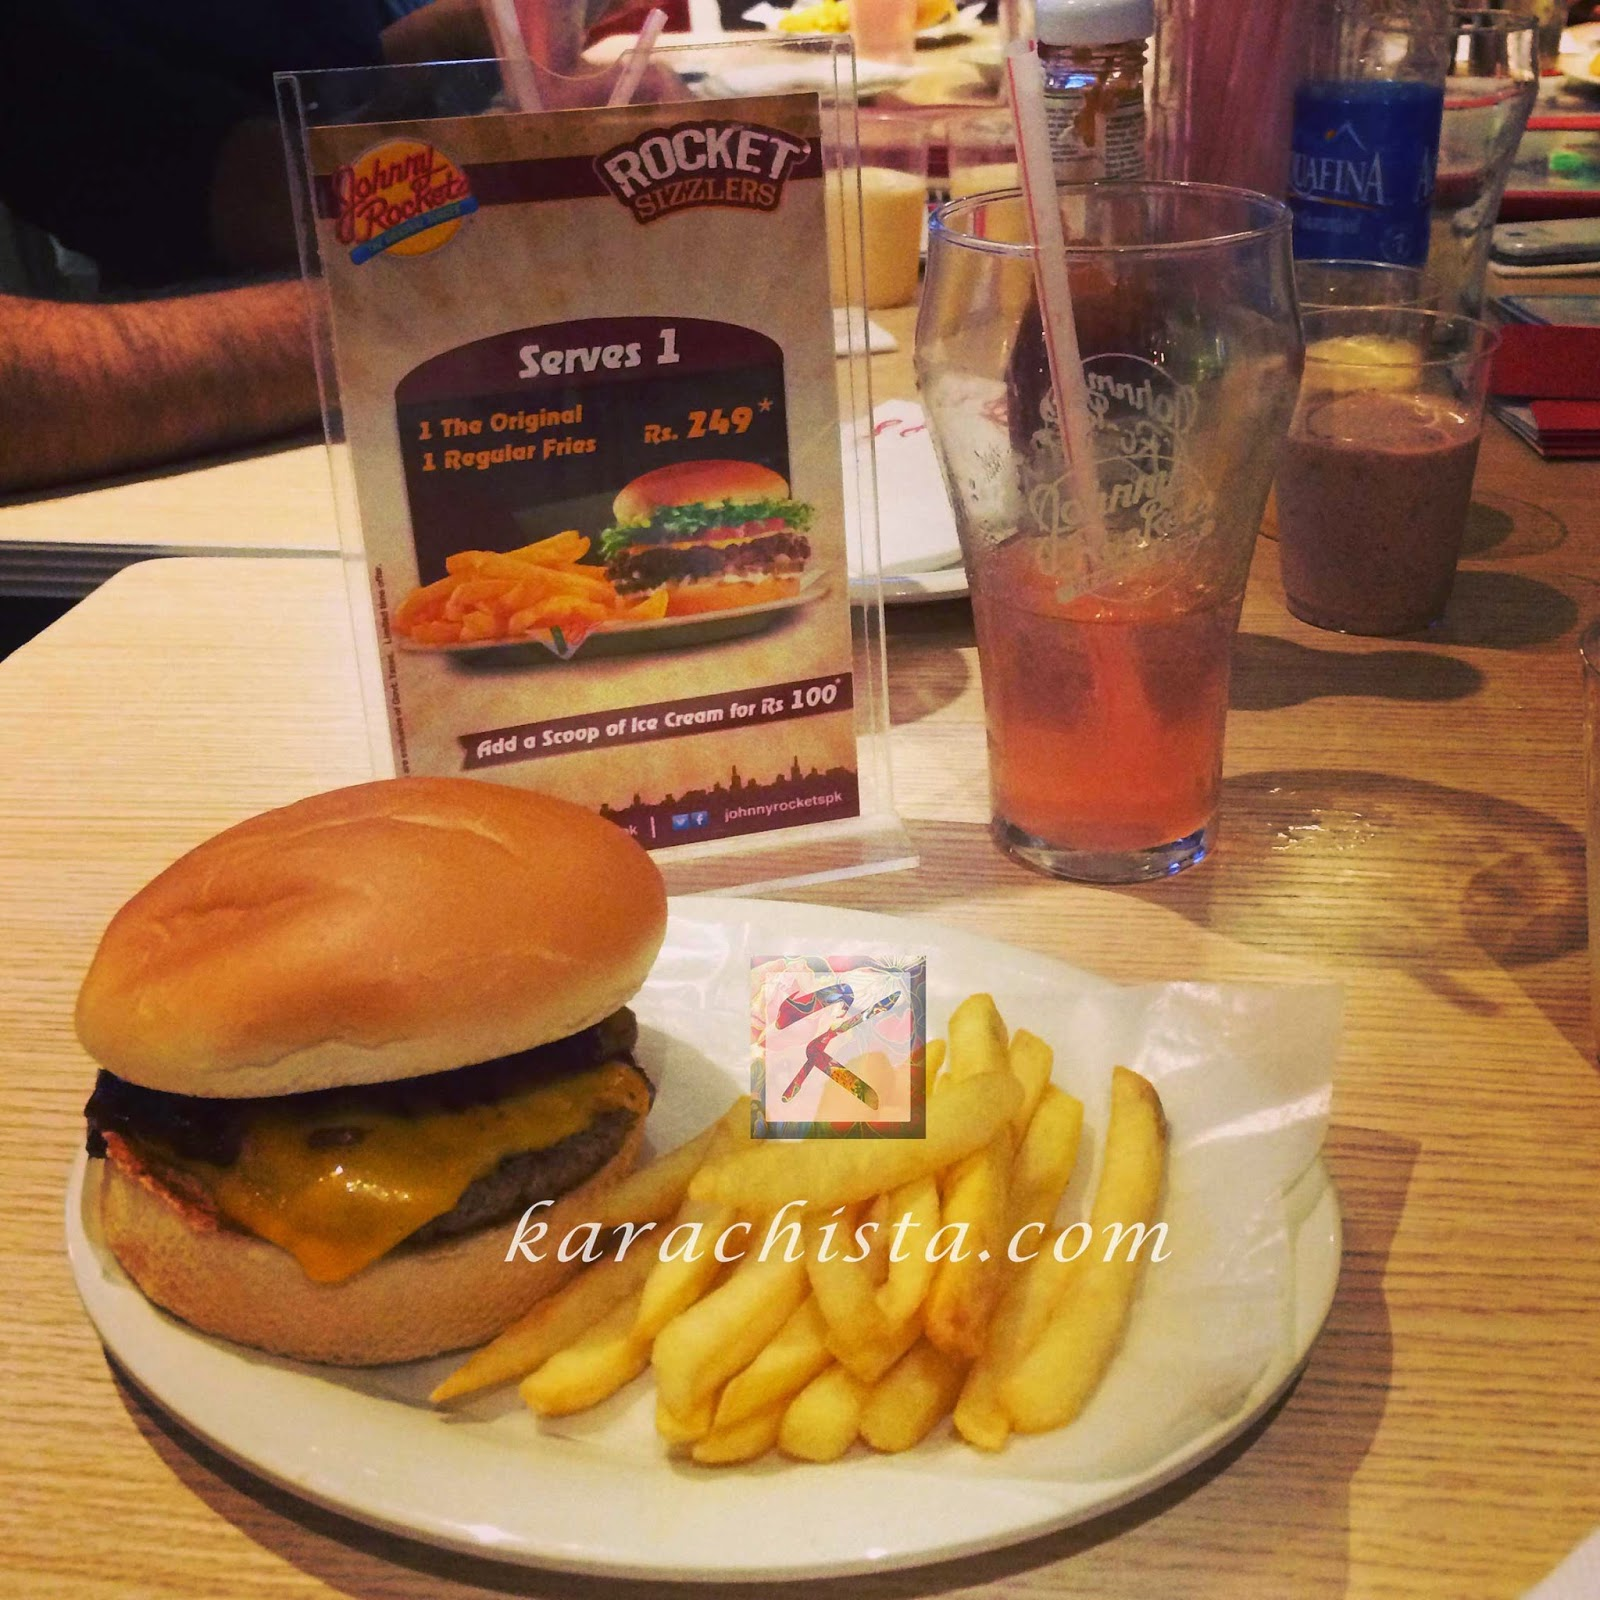 Johnny Rockets Karachi